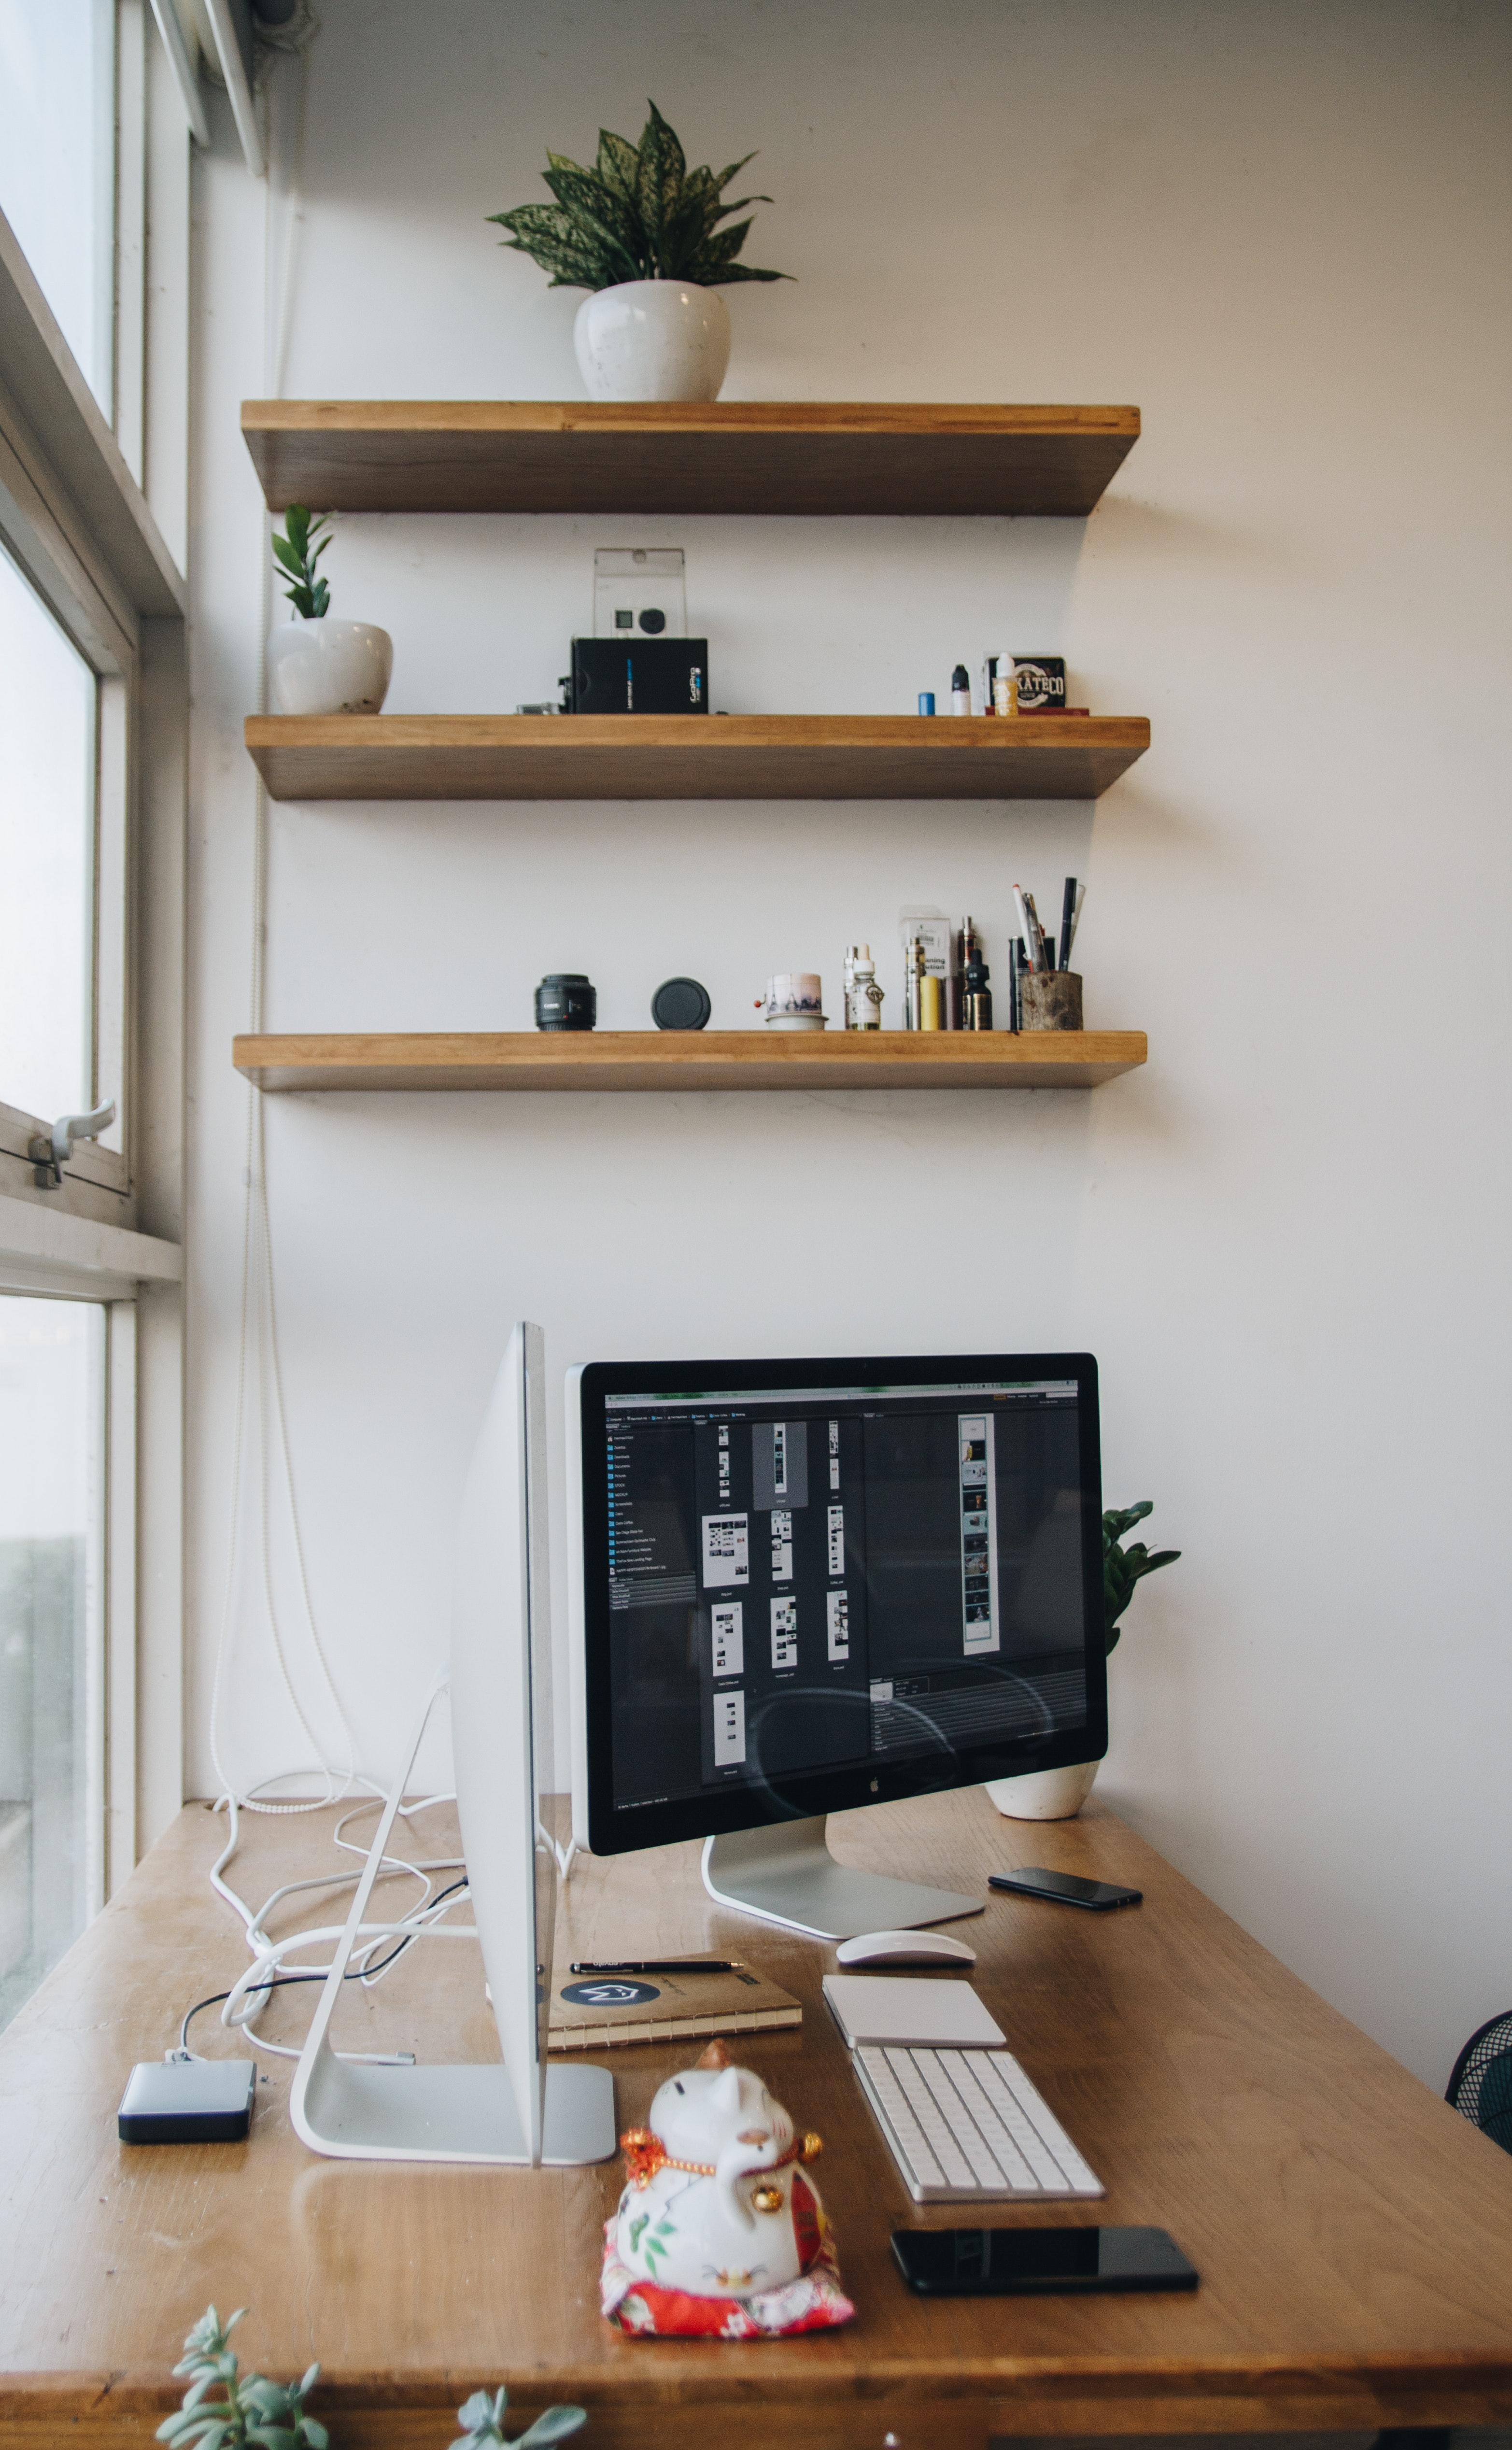 Imac On Desk 183 Free Stock Photo